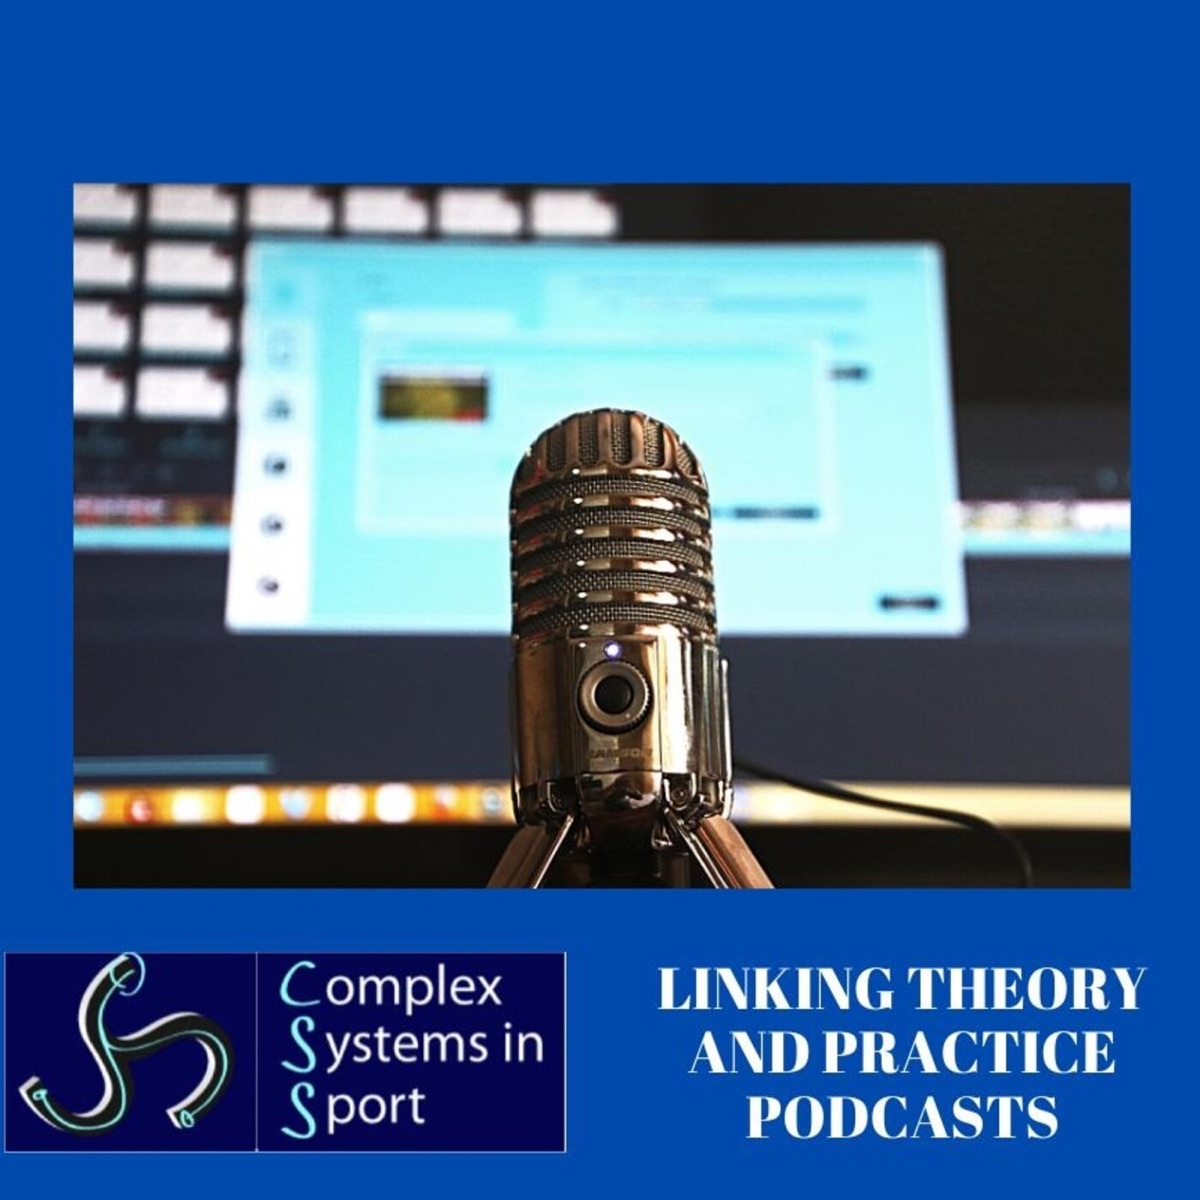 Linking Theory and Practice